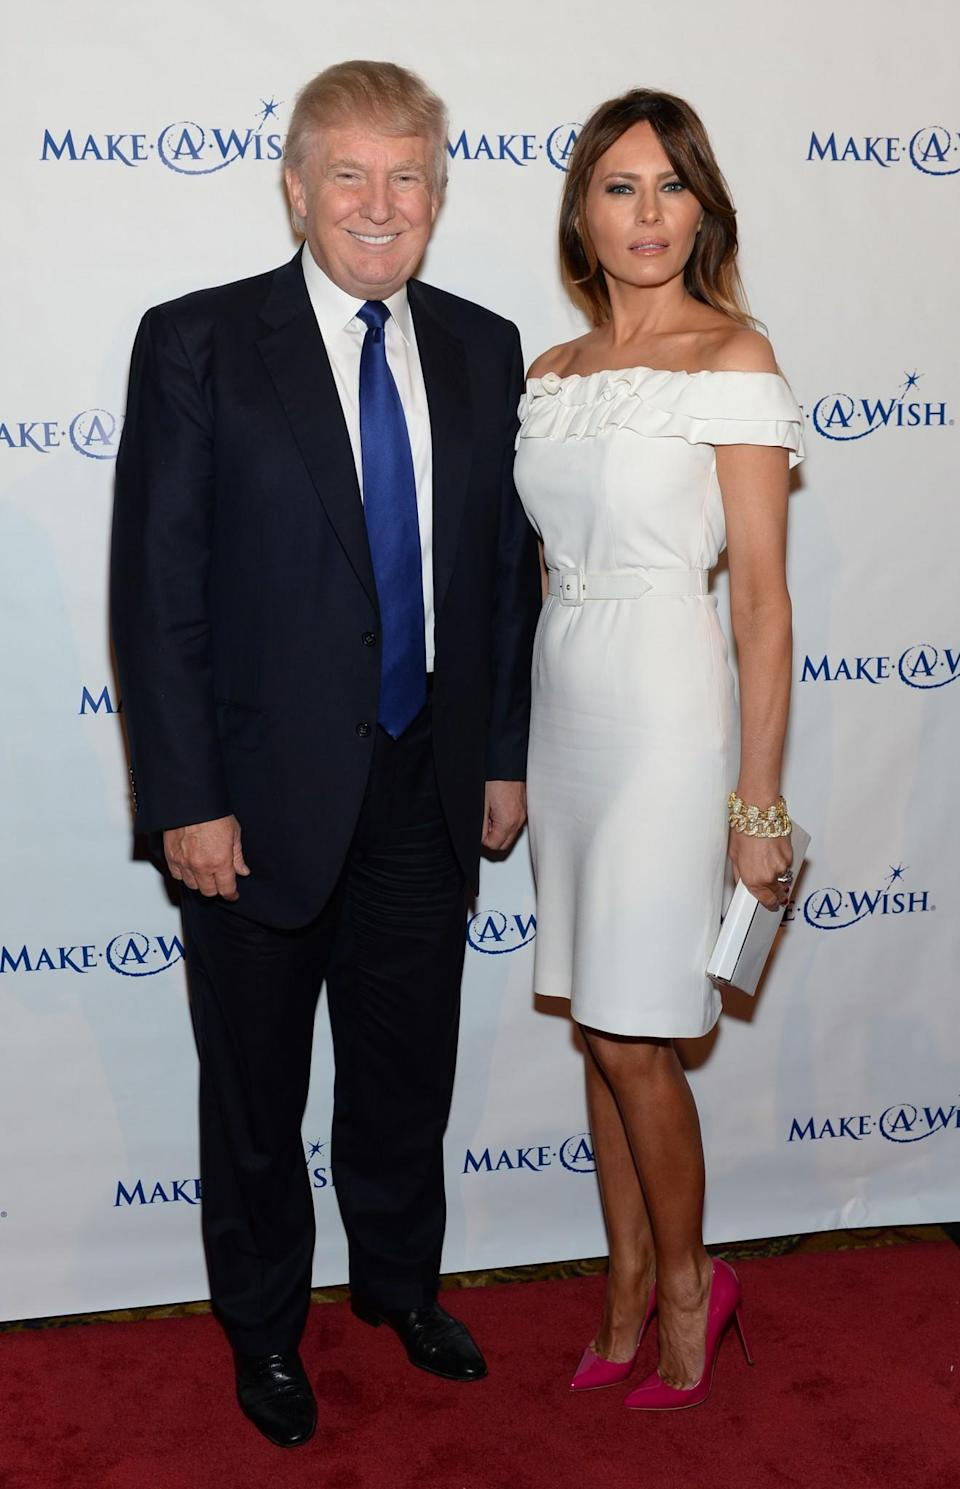 <p>Going back to white, Melania worked a belted dress and patent pink stilettos to attend a charity gala with her husband, Donald Trump. <i>[Photo: Getty]</i> </p>